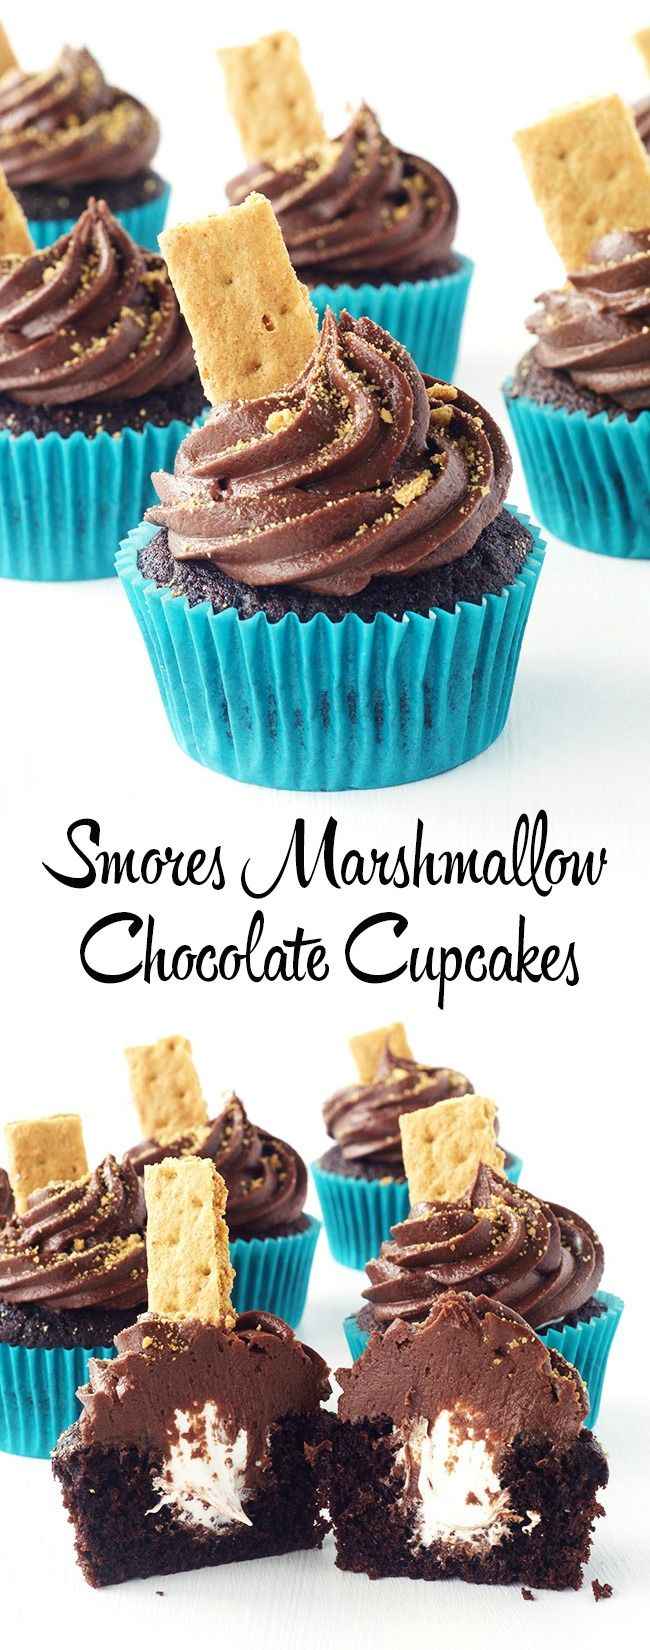 Smores Chocolate Cupcakes filled with homemade marshmallow fluff and topped with creamy chocolate buttercream.